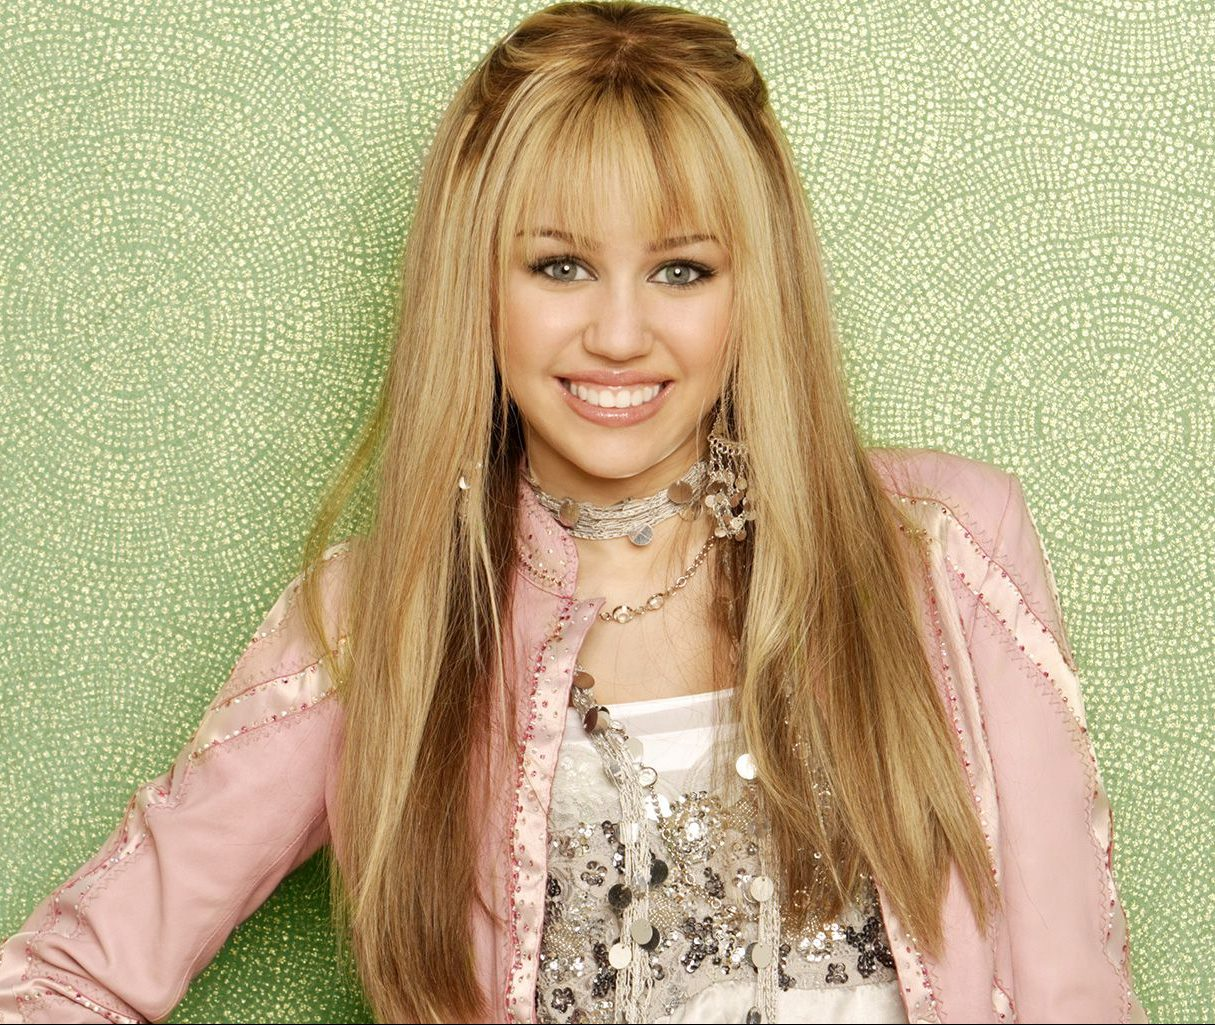 miley cyrus hannah montana 1553890374 e1606740905628 30 Childhood Toys So Dangerous They Ended Up Banned